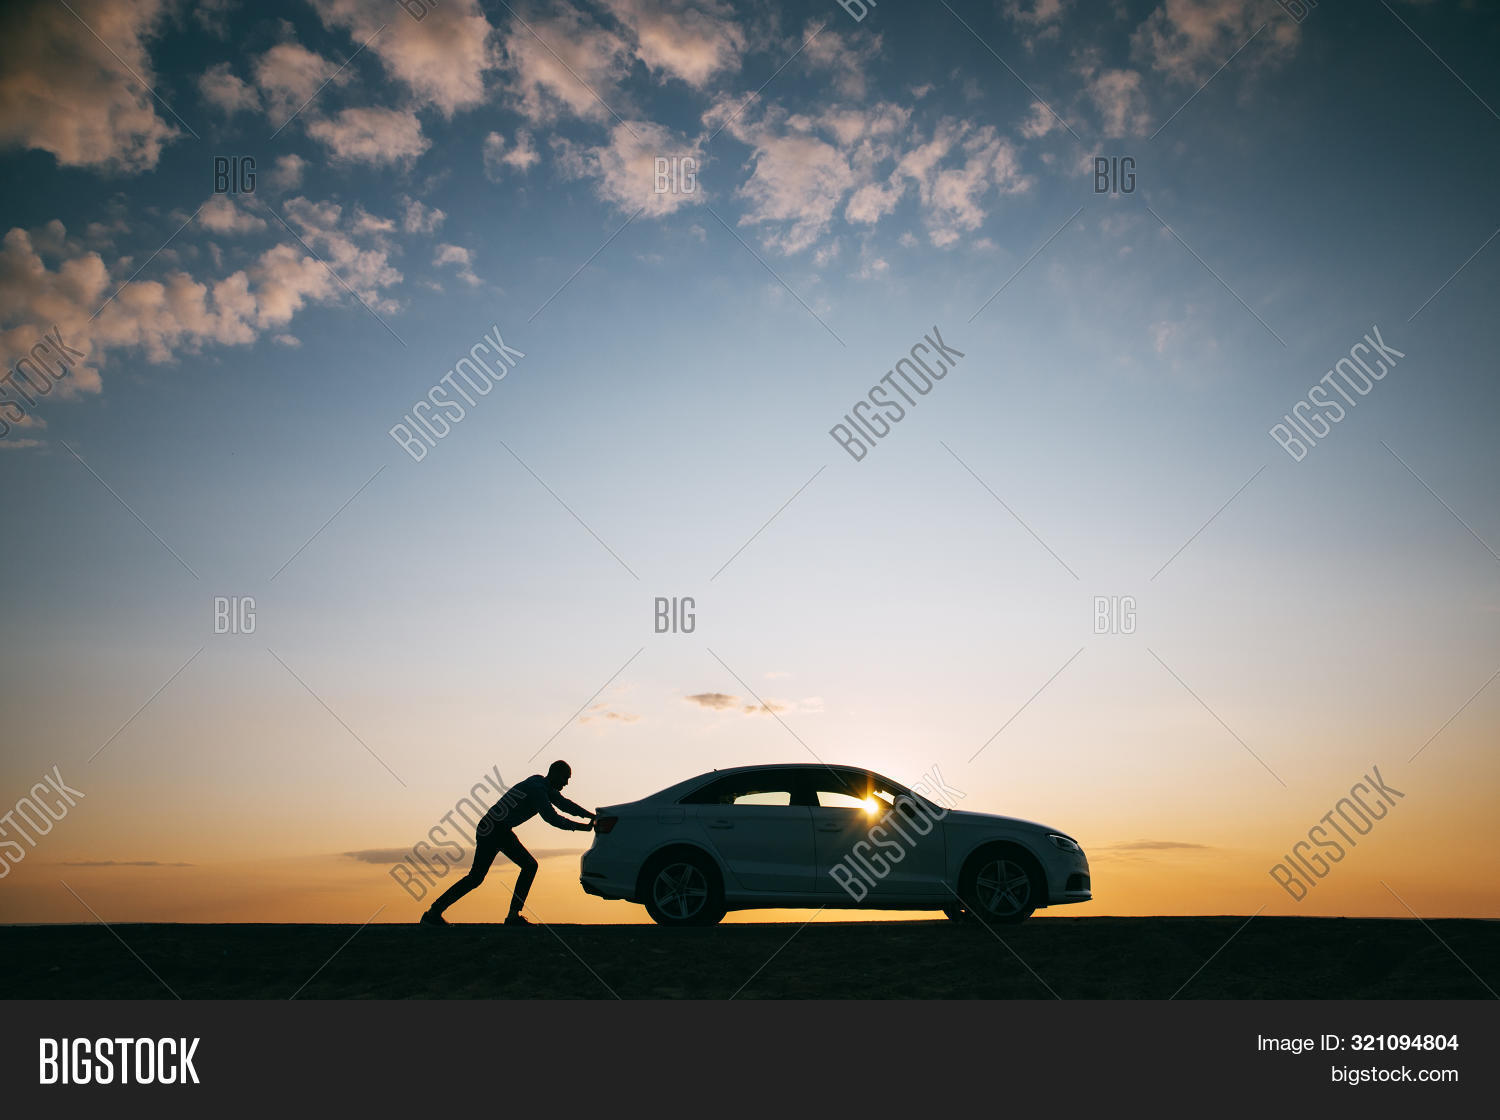 adventure,auto,automobile,break-down,breakdown,broken,car,countryside,despair,driver,dusk,effort,engine,frustration,fuel,help,landscape,male,man,out,petrol,problem,push,road,sky,sun,sunset,towing,transportation,trouble,vehicle,vehicular